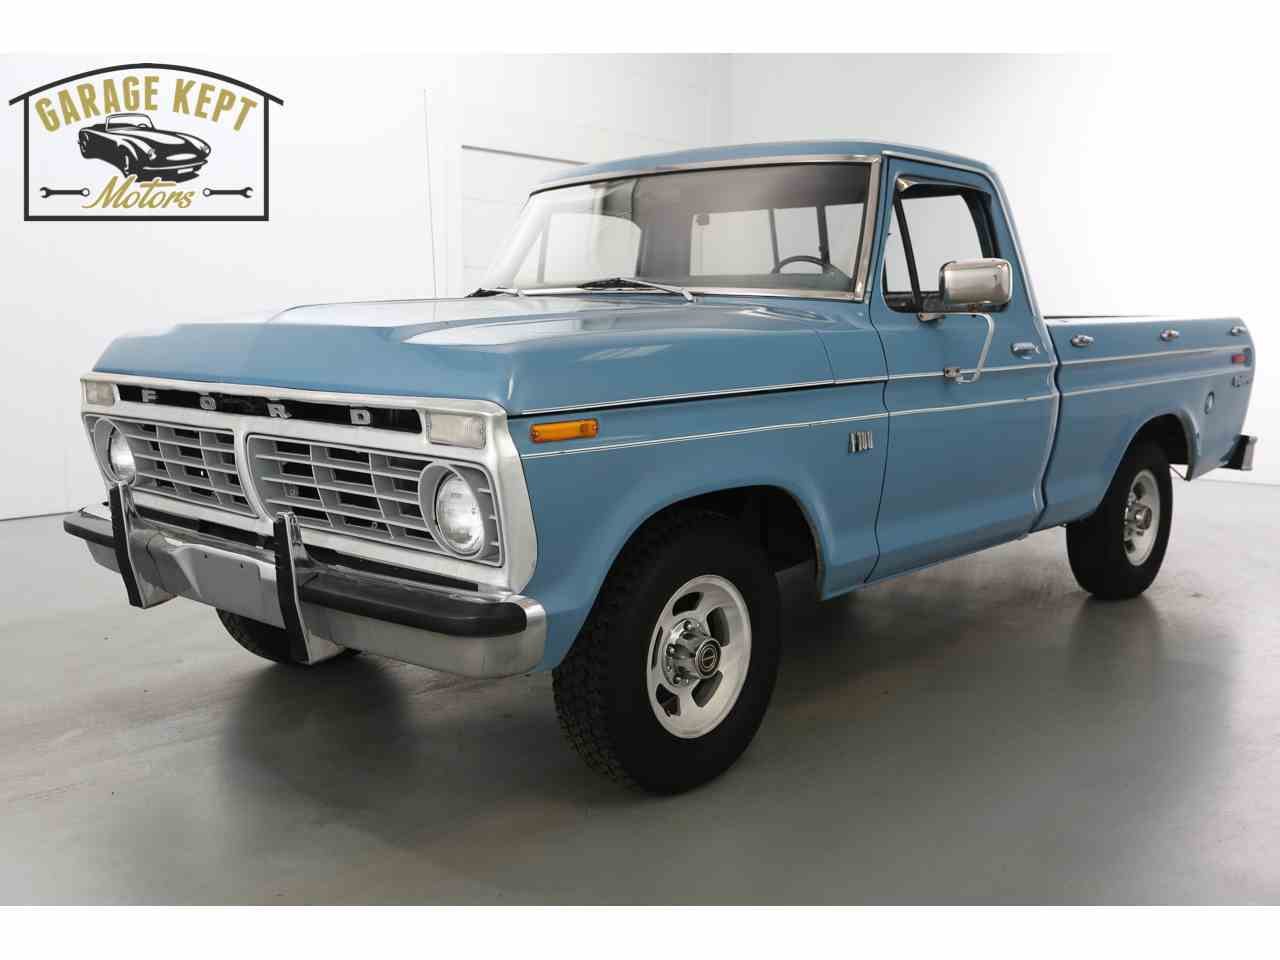 1974 Ford F100 Pick-up Truck – Chip Millard Makes Photographs  |1974 Ford F100